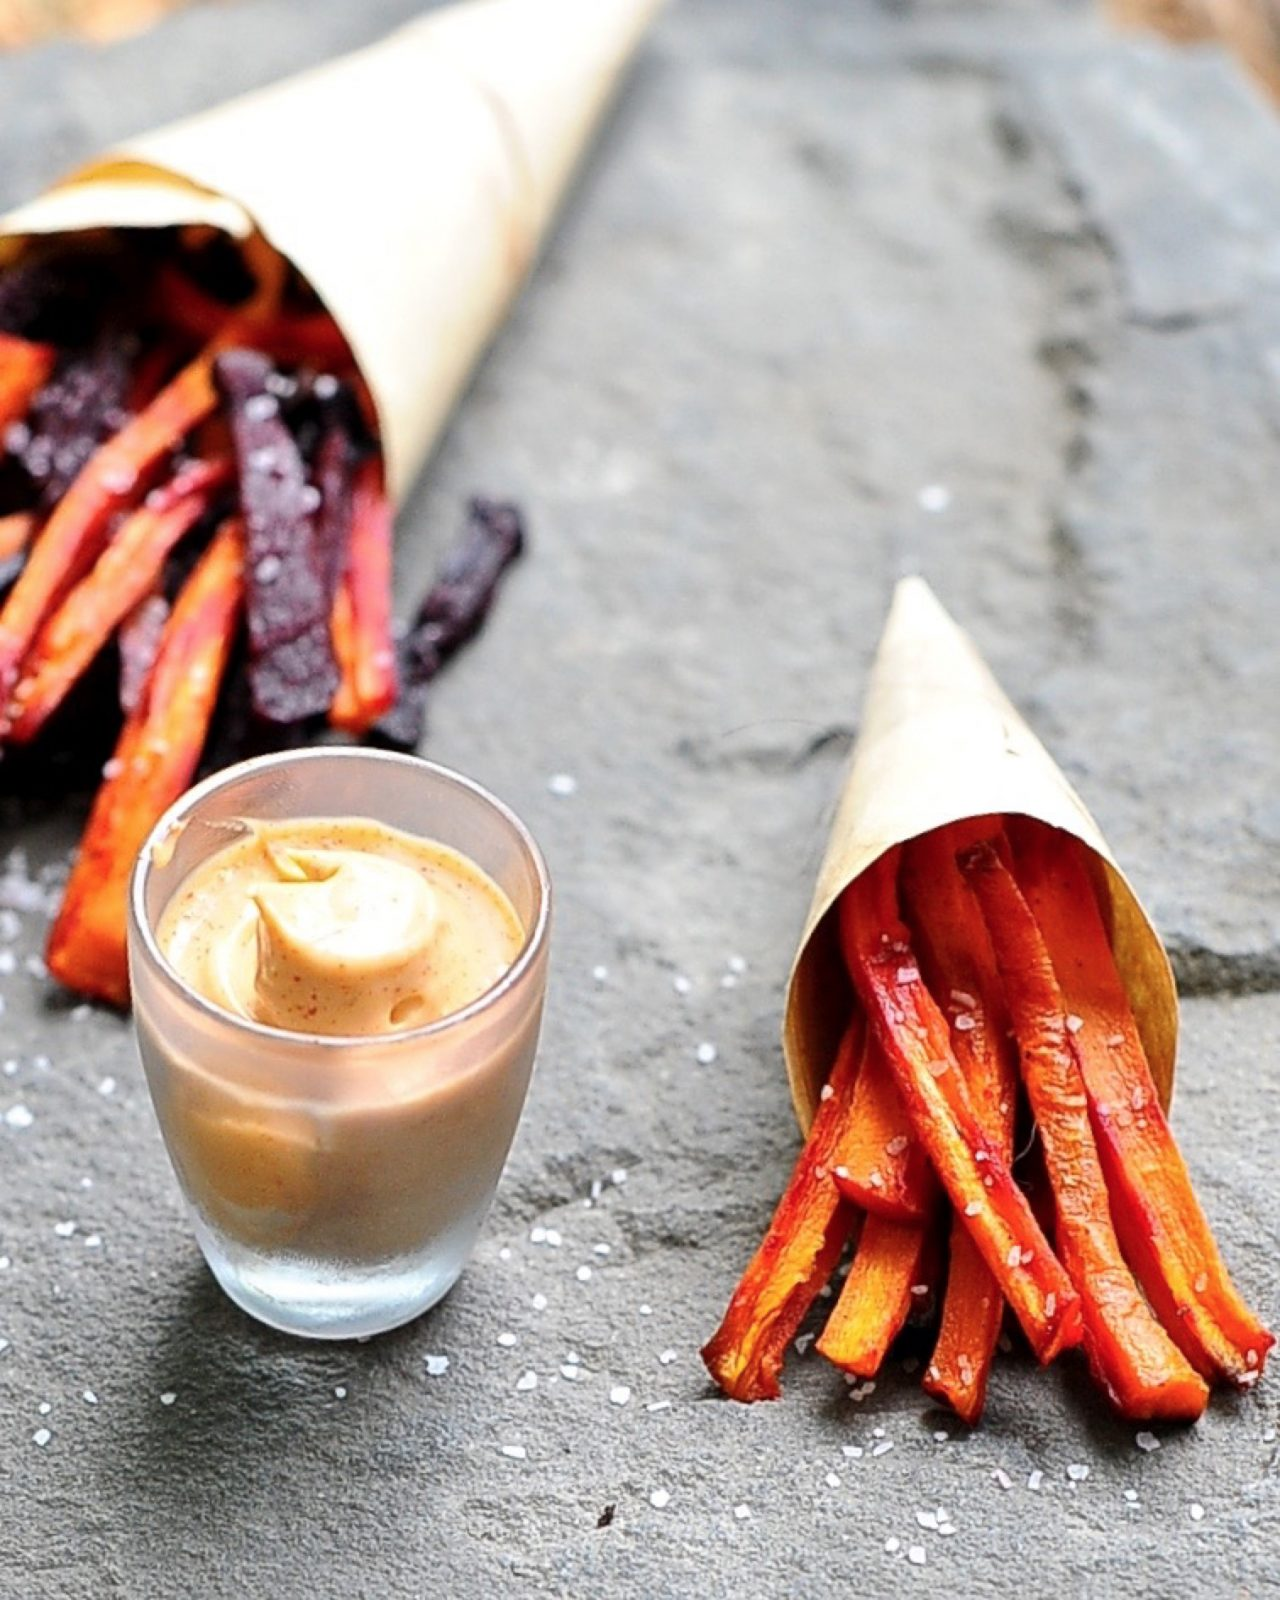 Healthy Carrot Fries with Chipotle Aioli (Vegan, Gluten Free)